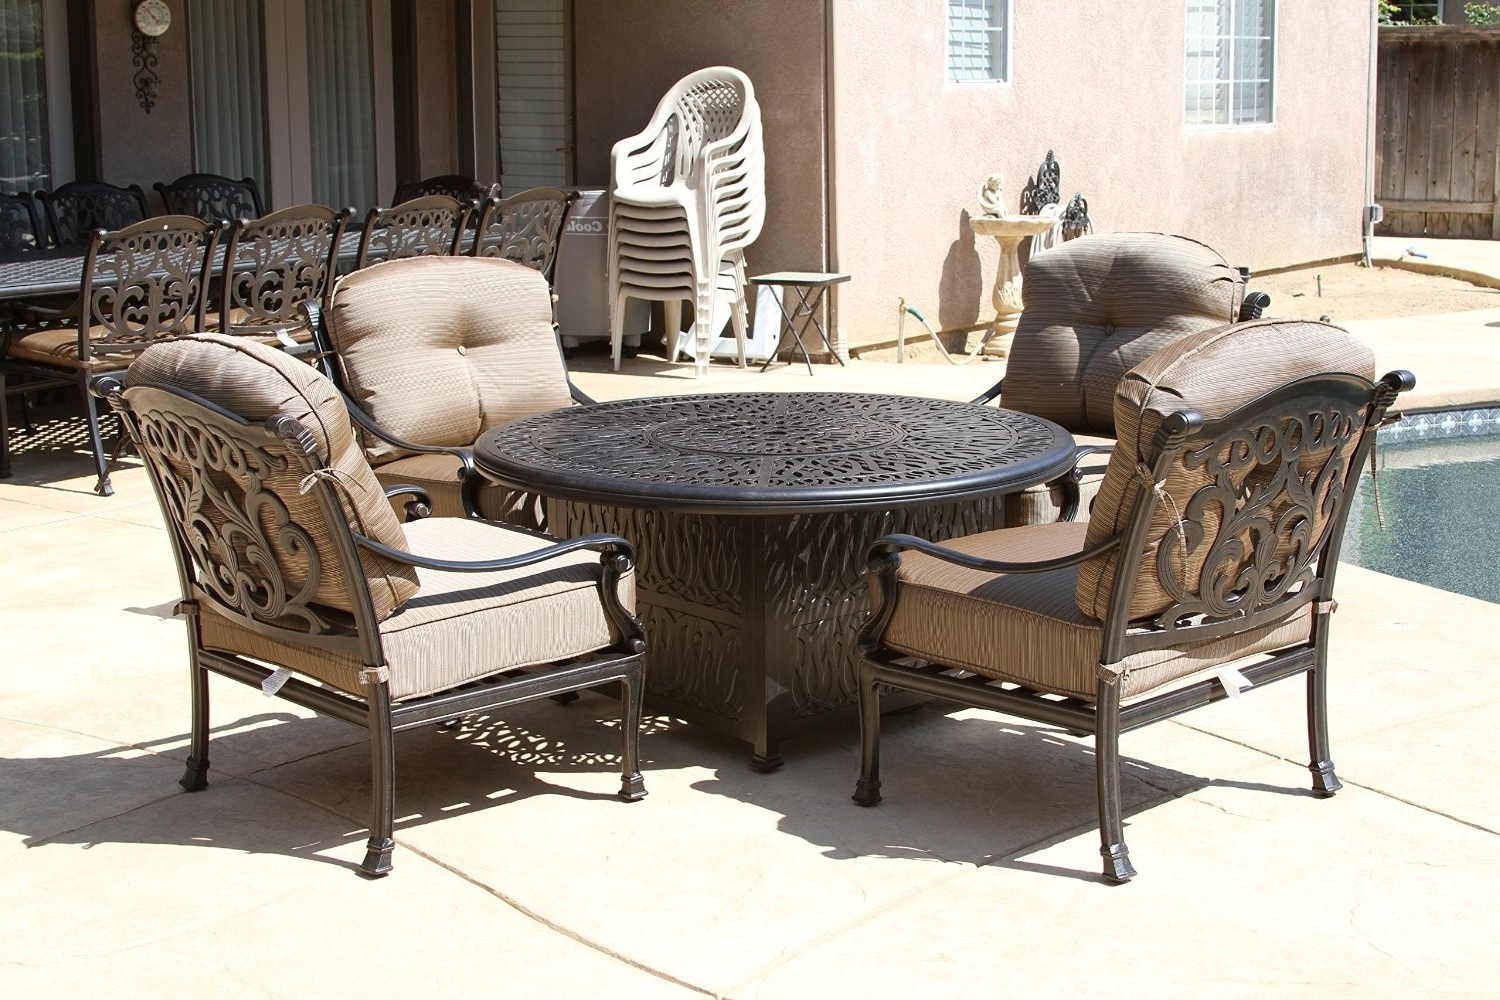 """Deep Seating Patio Conversation Sets Inside Widely Used Flamingo 5Pc Deep Seating Set – 4 Club Chairs And 52"""" Round Fire Pit (View 13 of 15)"""